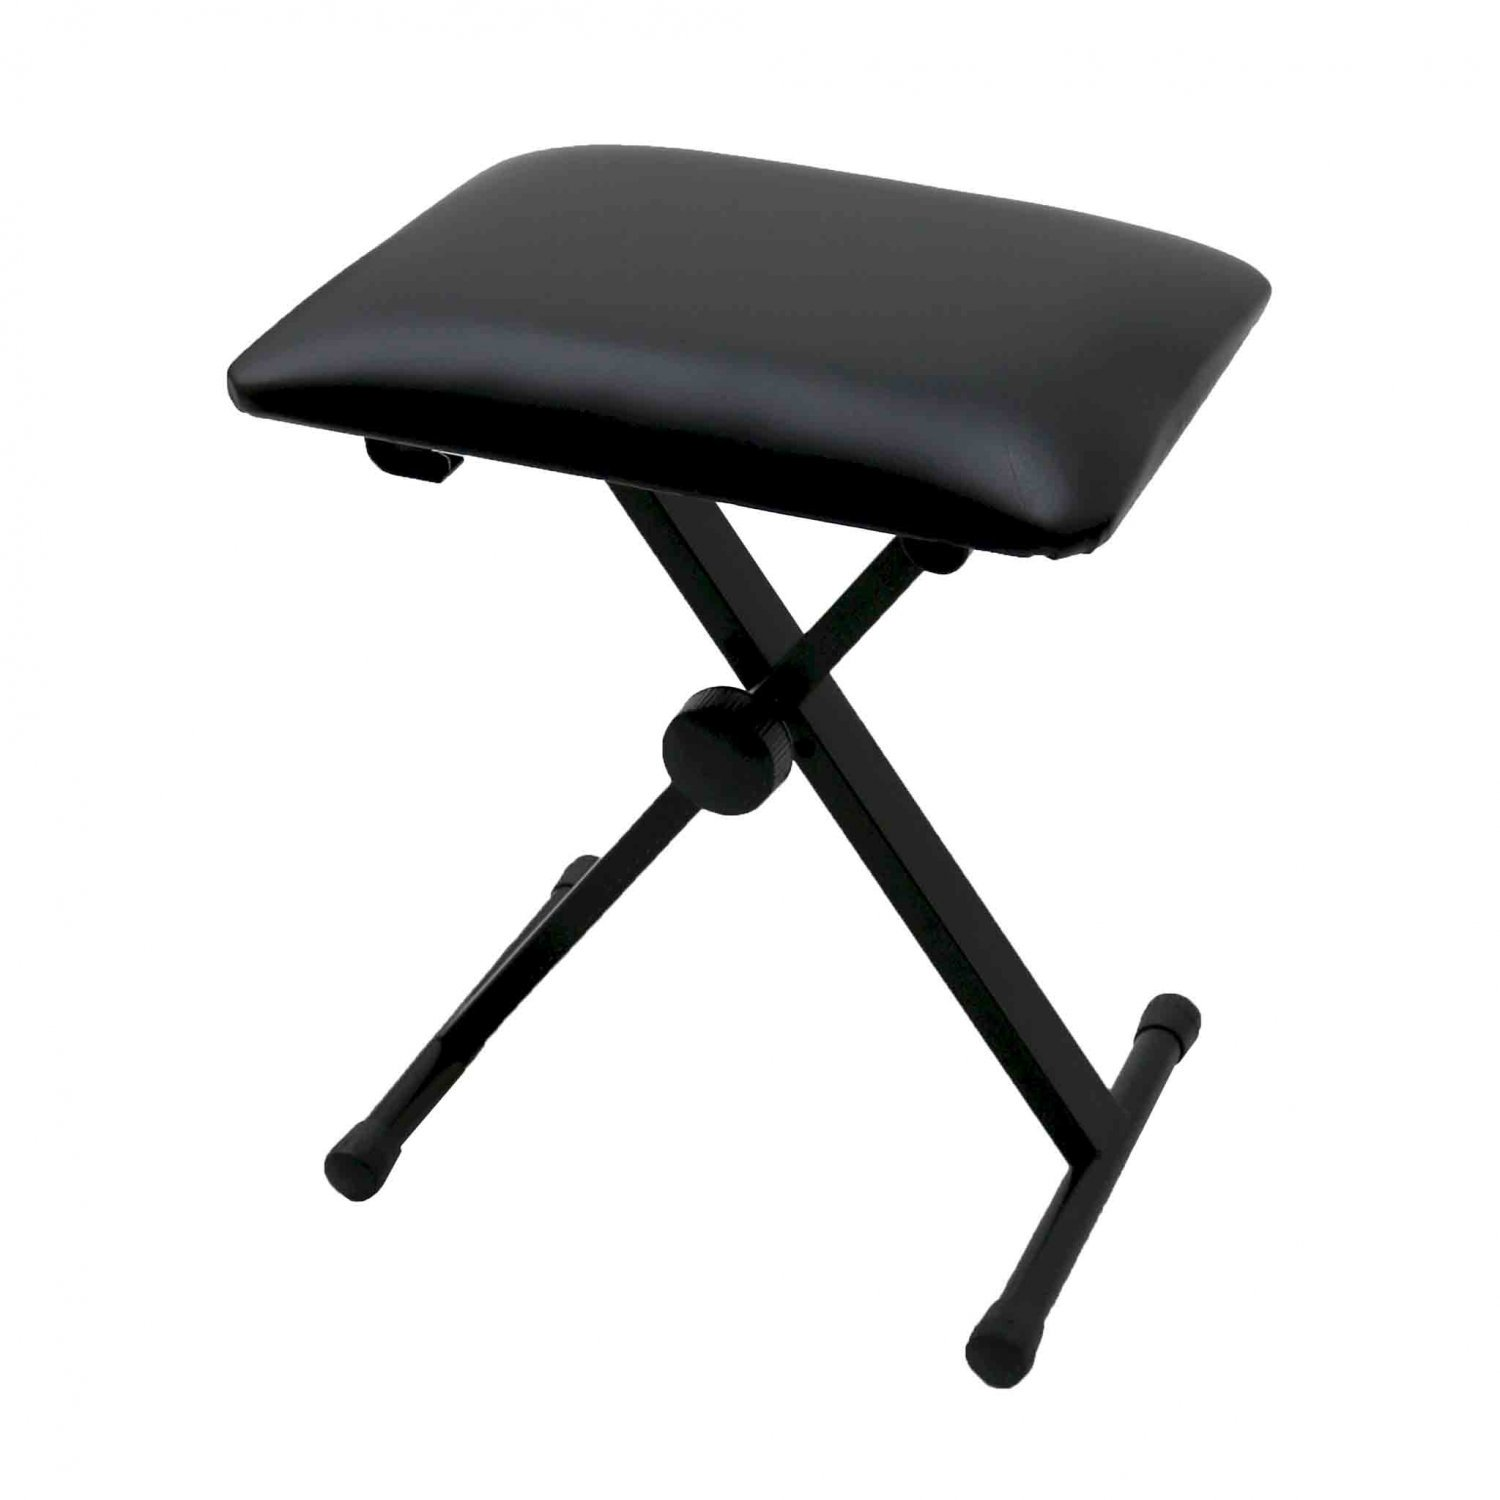 Keyboard Piano Bench Stool Seat Chair Throne Adjustable Portable